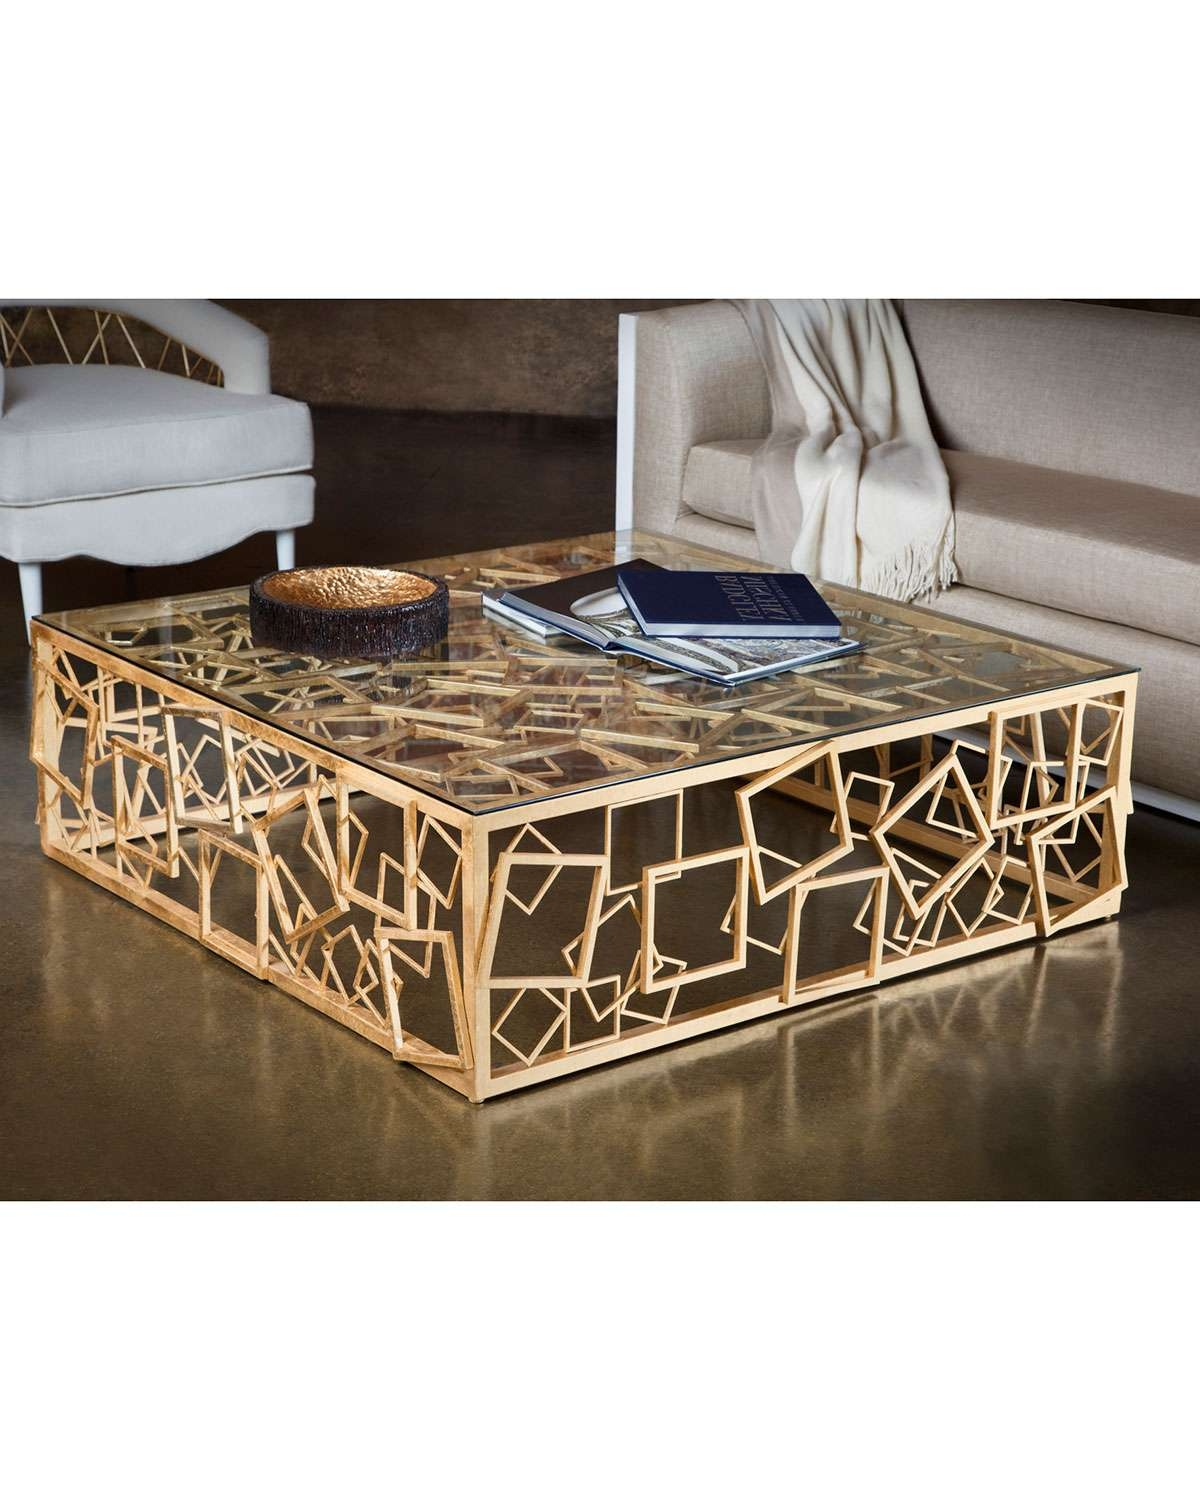 Most Recently Released Monterey Coffee Tables Regarding Monterey Coffee Tablebadgley Mischka (View 10 of 20)